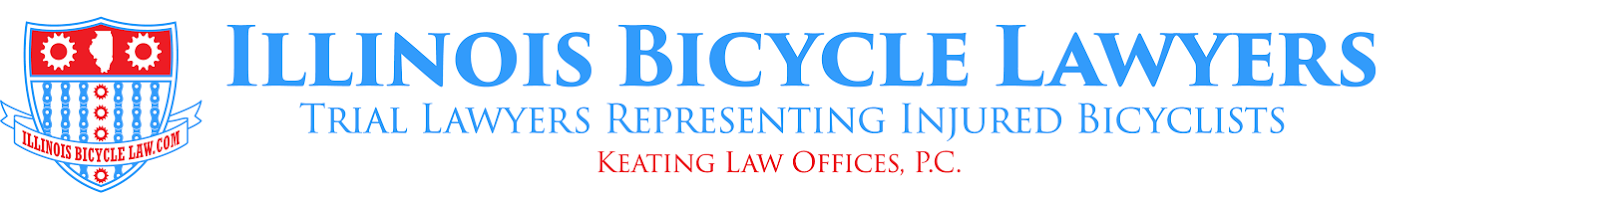 Chicago Bicycle Accident Lawyer | Illinois Bicycle Lawyers at Keating Law Offices